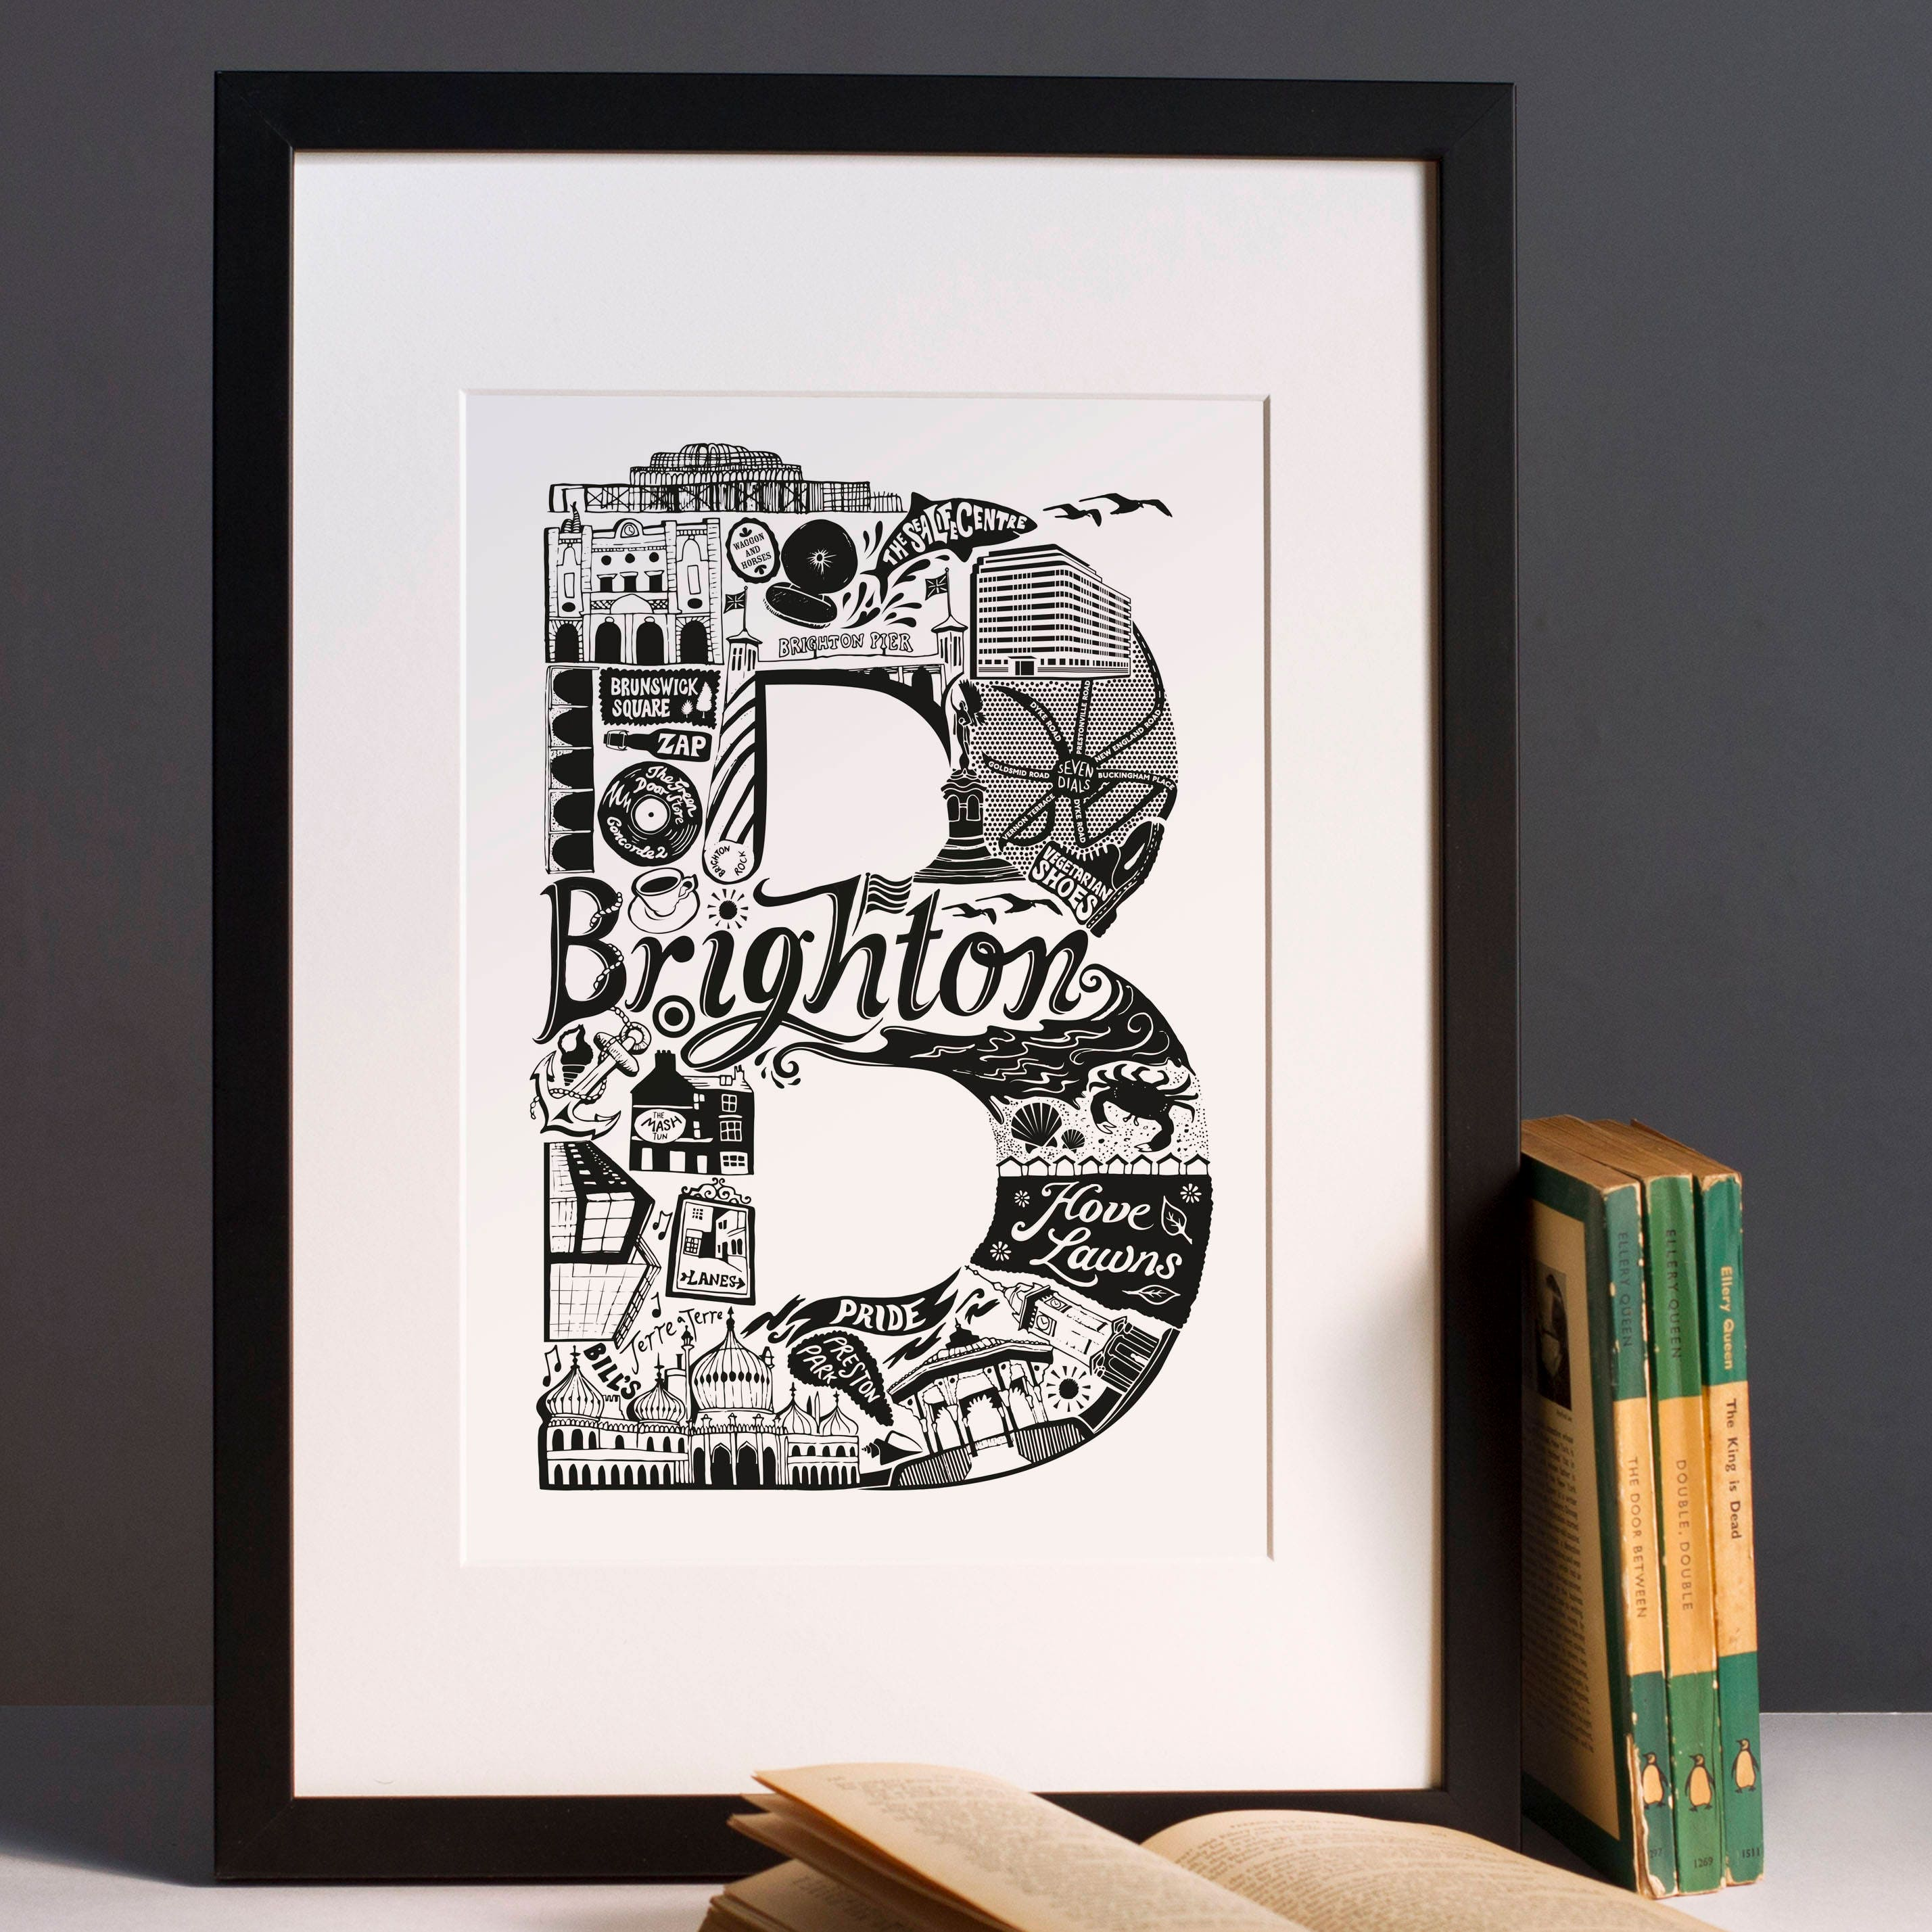 Best of brighton print graduation gift university town zoom jeuxipadfo Gallery